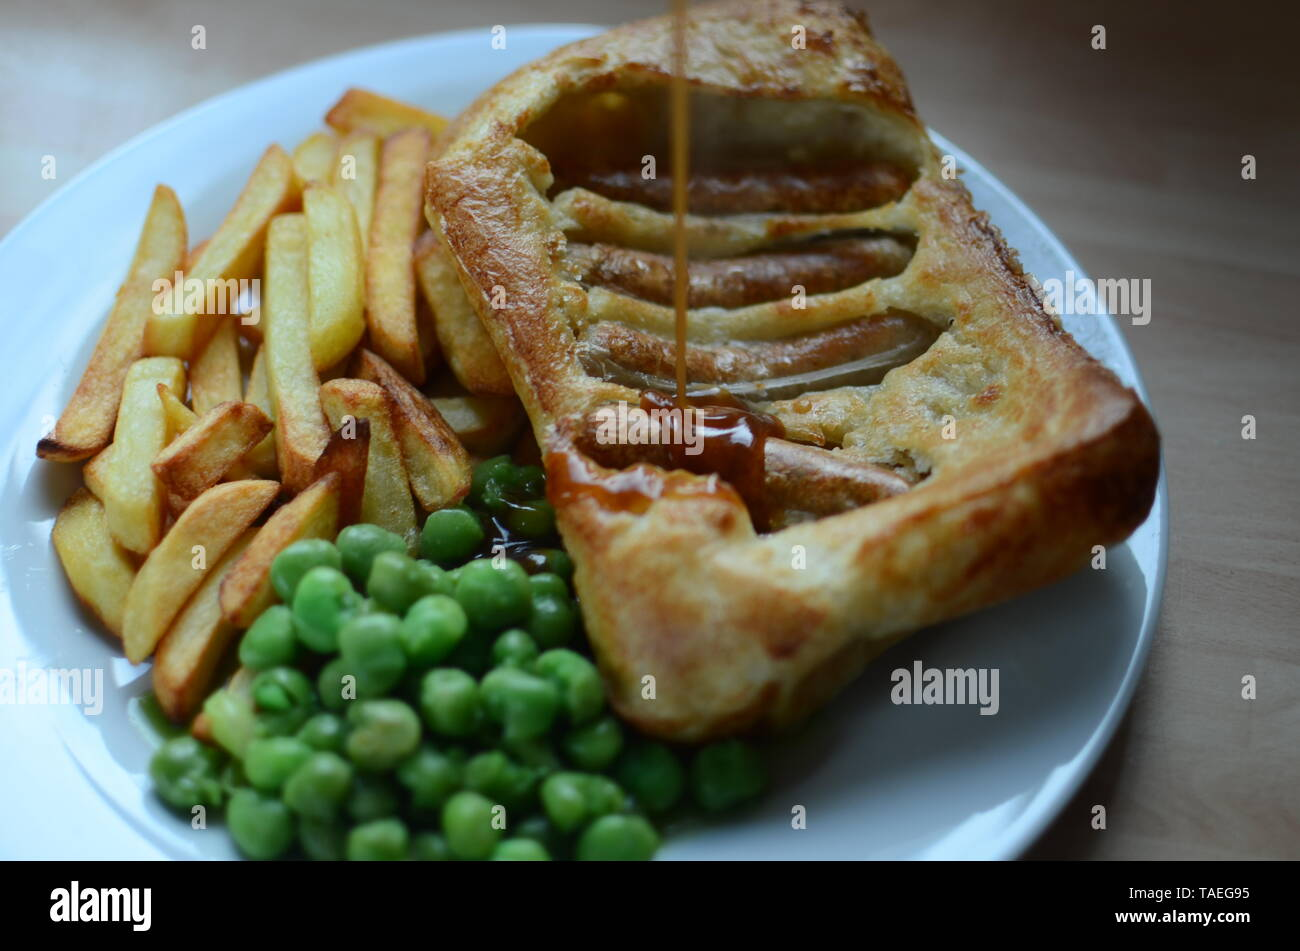 Toad in the hole (sausages baked in batter, England) Stock Photo